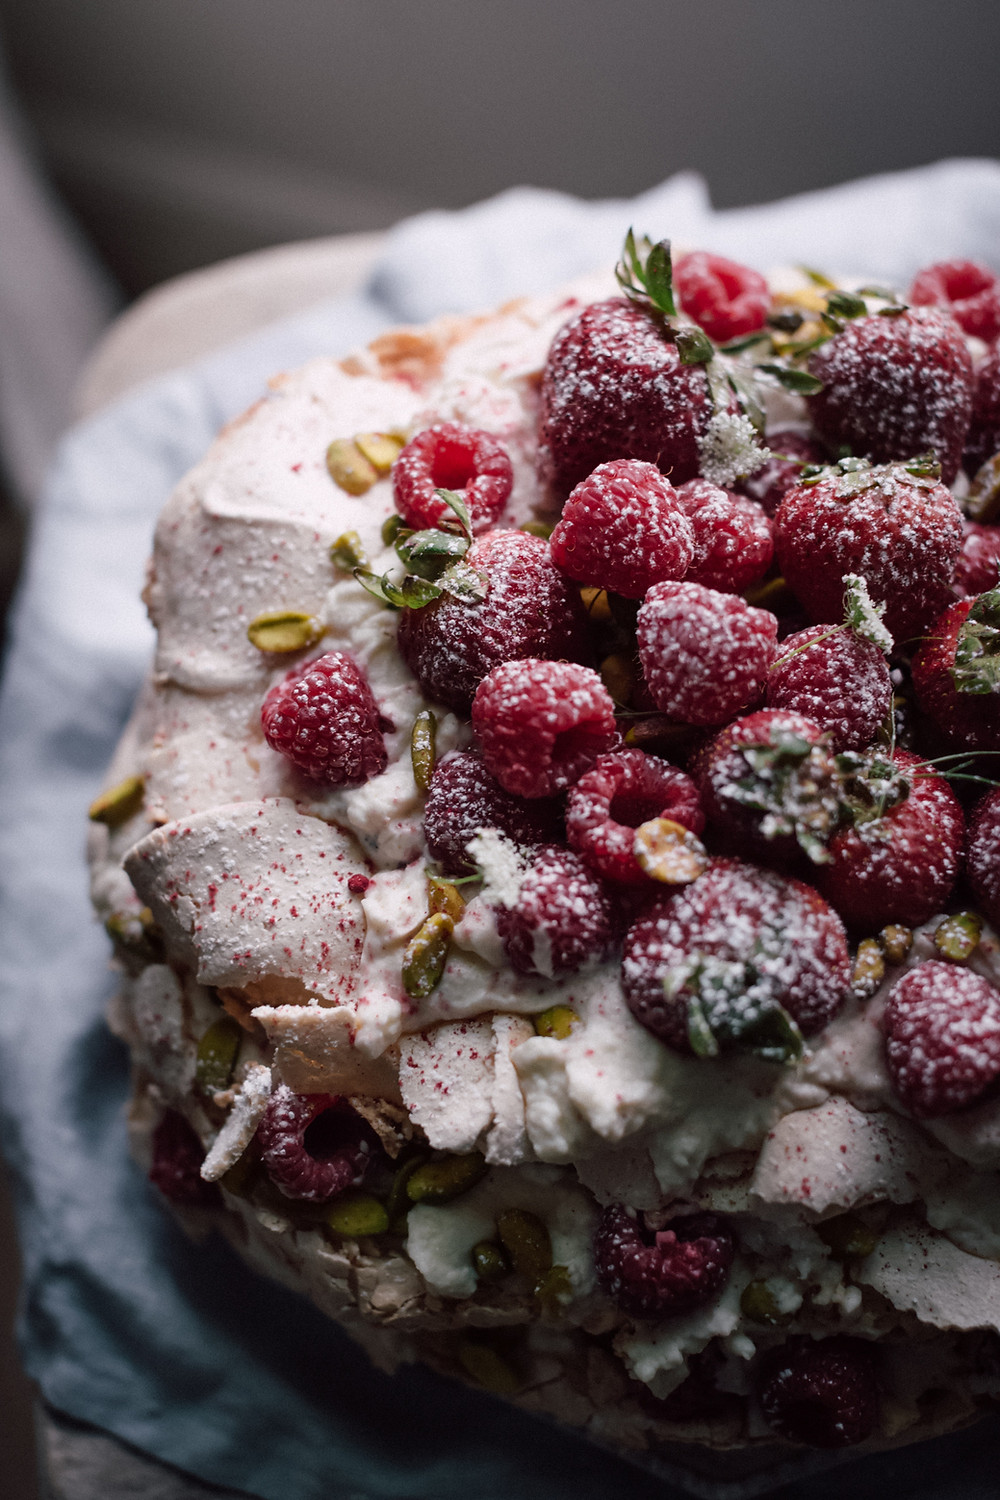 Berries Pavlova, a fancy dessert